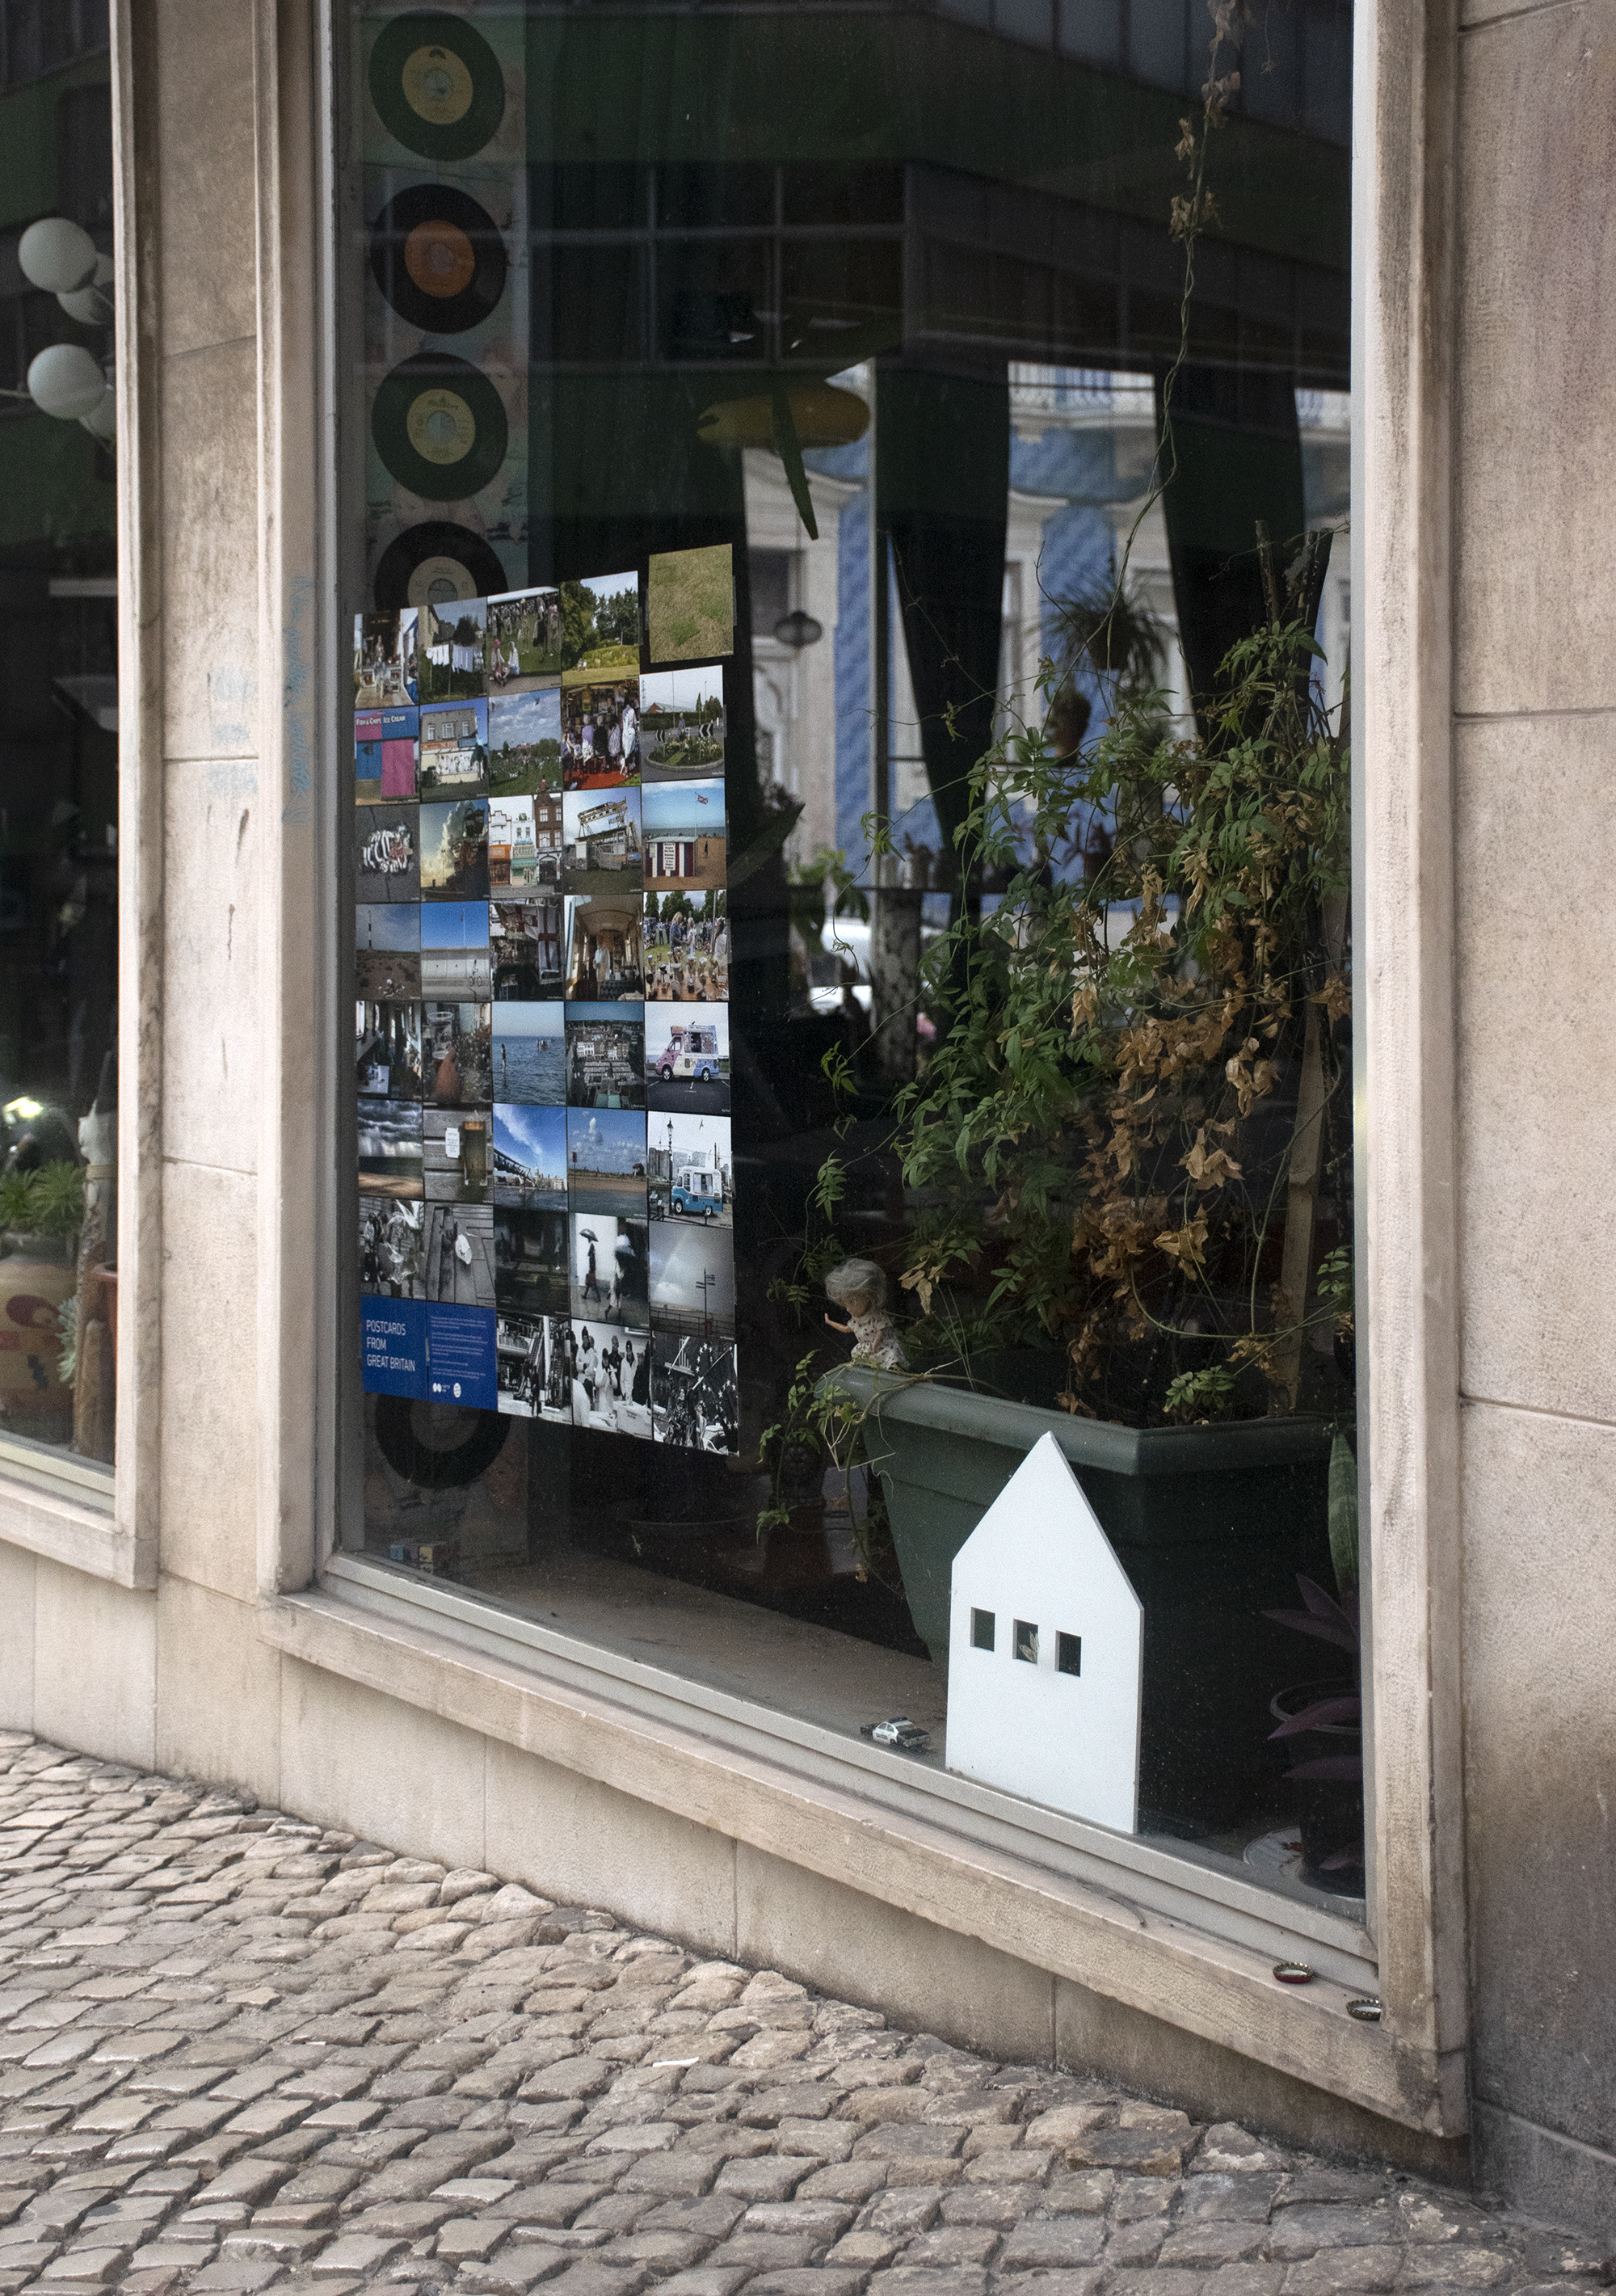 A street in Lisbon, Portugal. In one of the shop windows there is an exhibition of Shutter Hubs Postcards from Great Britain project, lots of postcard sized photographs